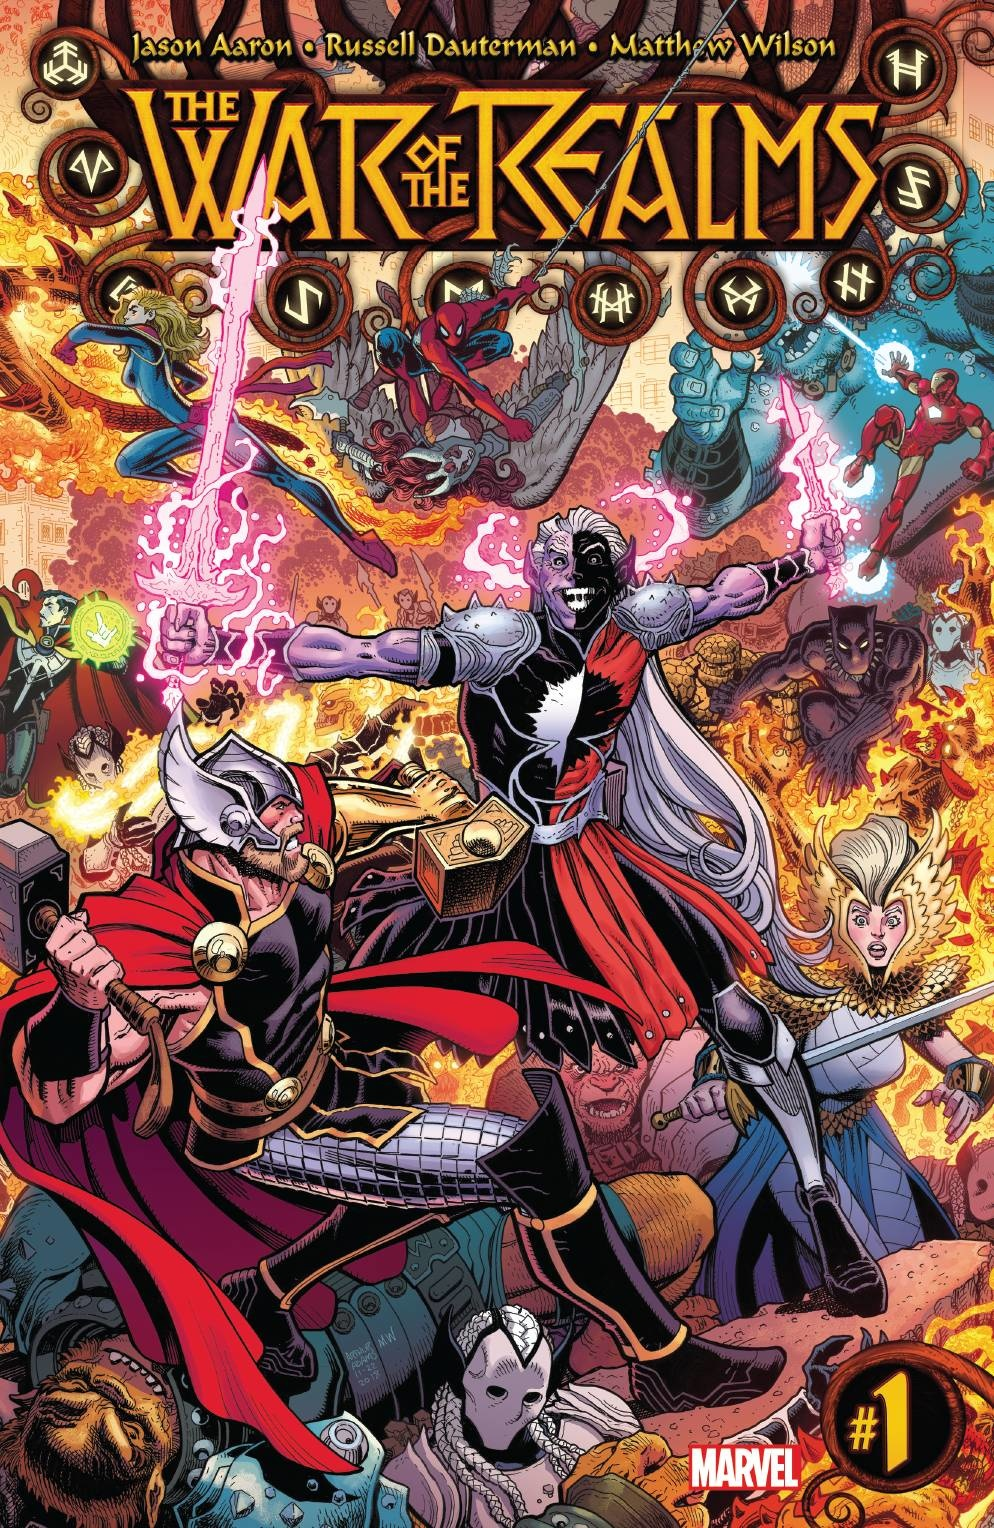 War of the Realms #1-#6 + Omega